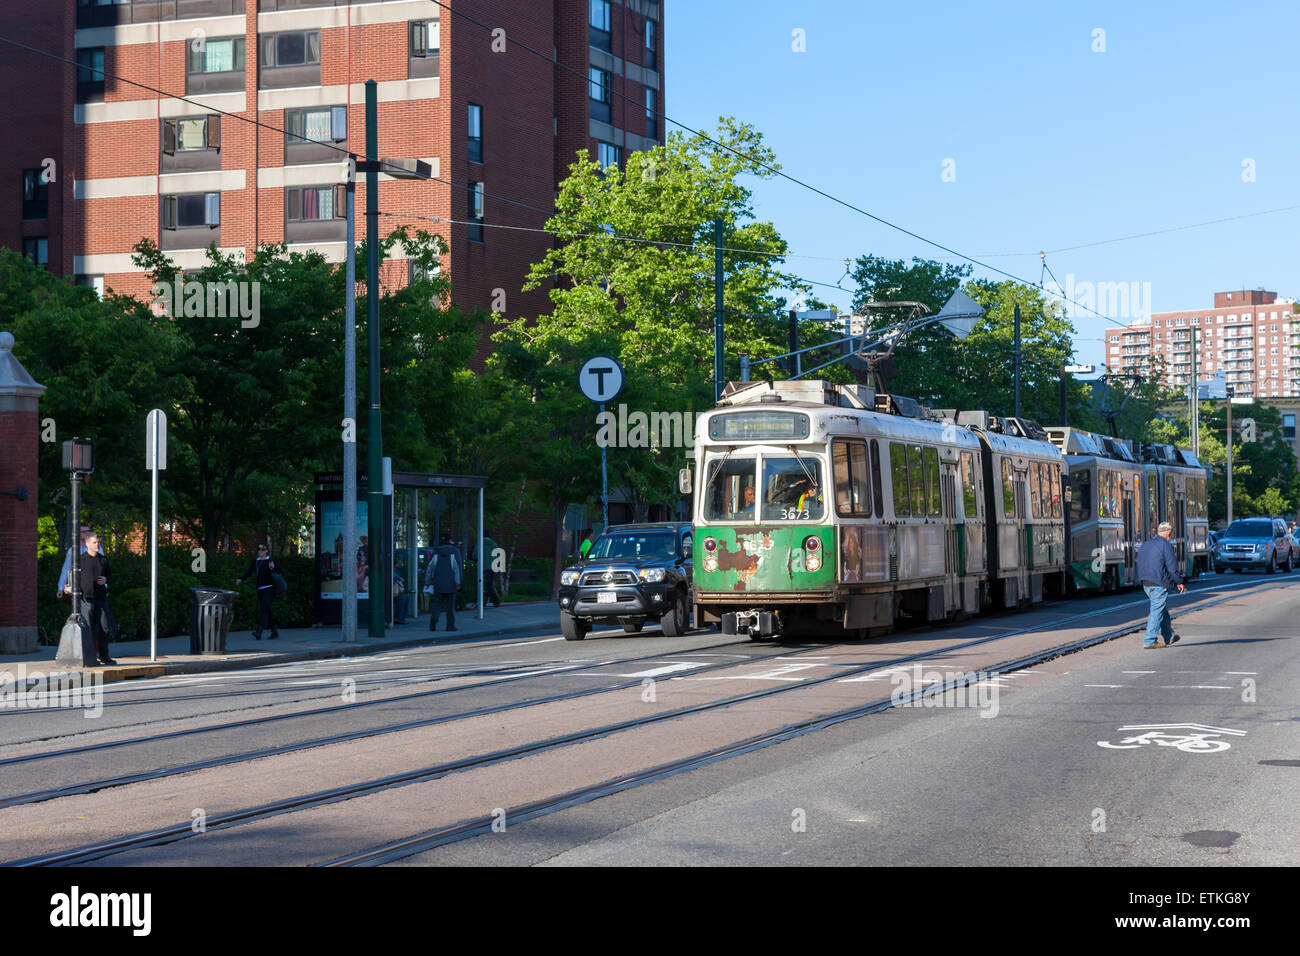 A well-used outbound train on the MBTA Huntington Avenue Line approaches Mission Park Station in Boston, Massachusetts. - Stock Image